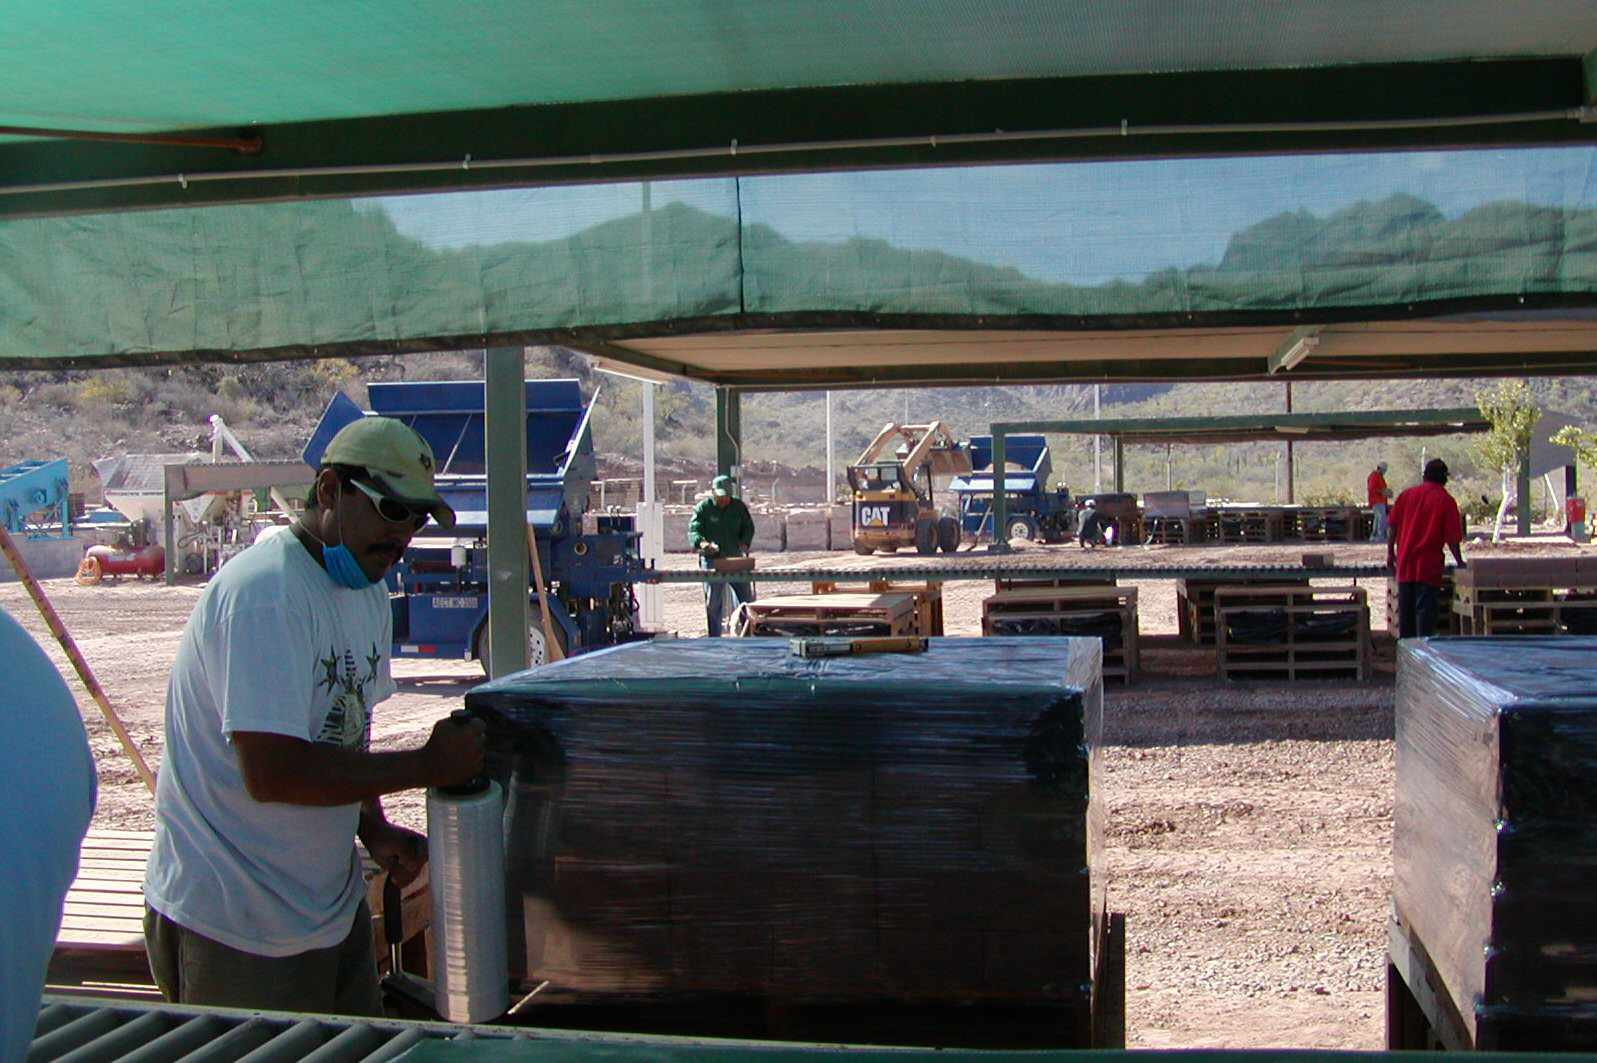 man in white t-shirt using plastic wrap to cover a pallet of blocks at a compression station under a tent-like cover